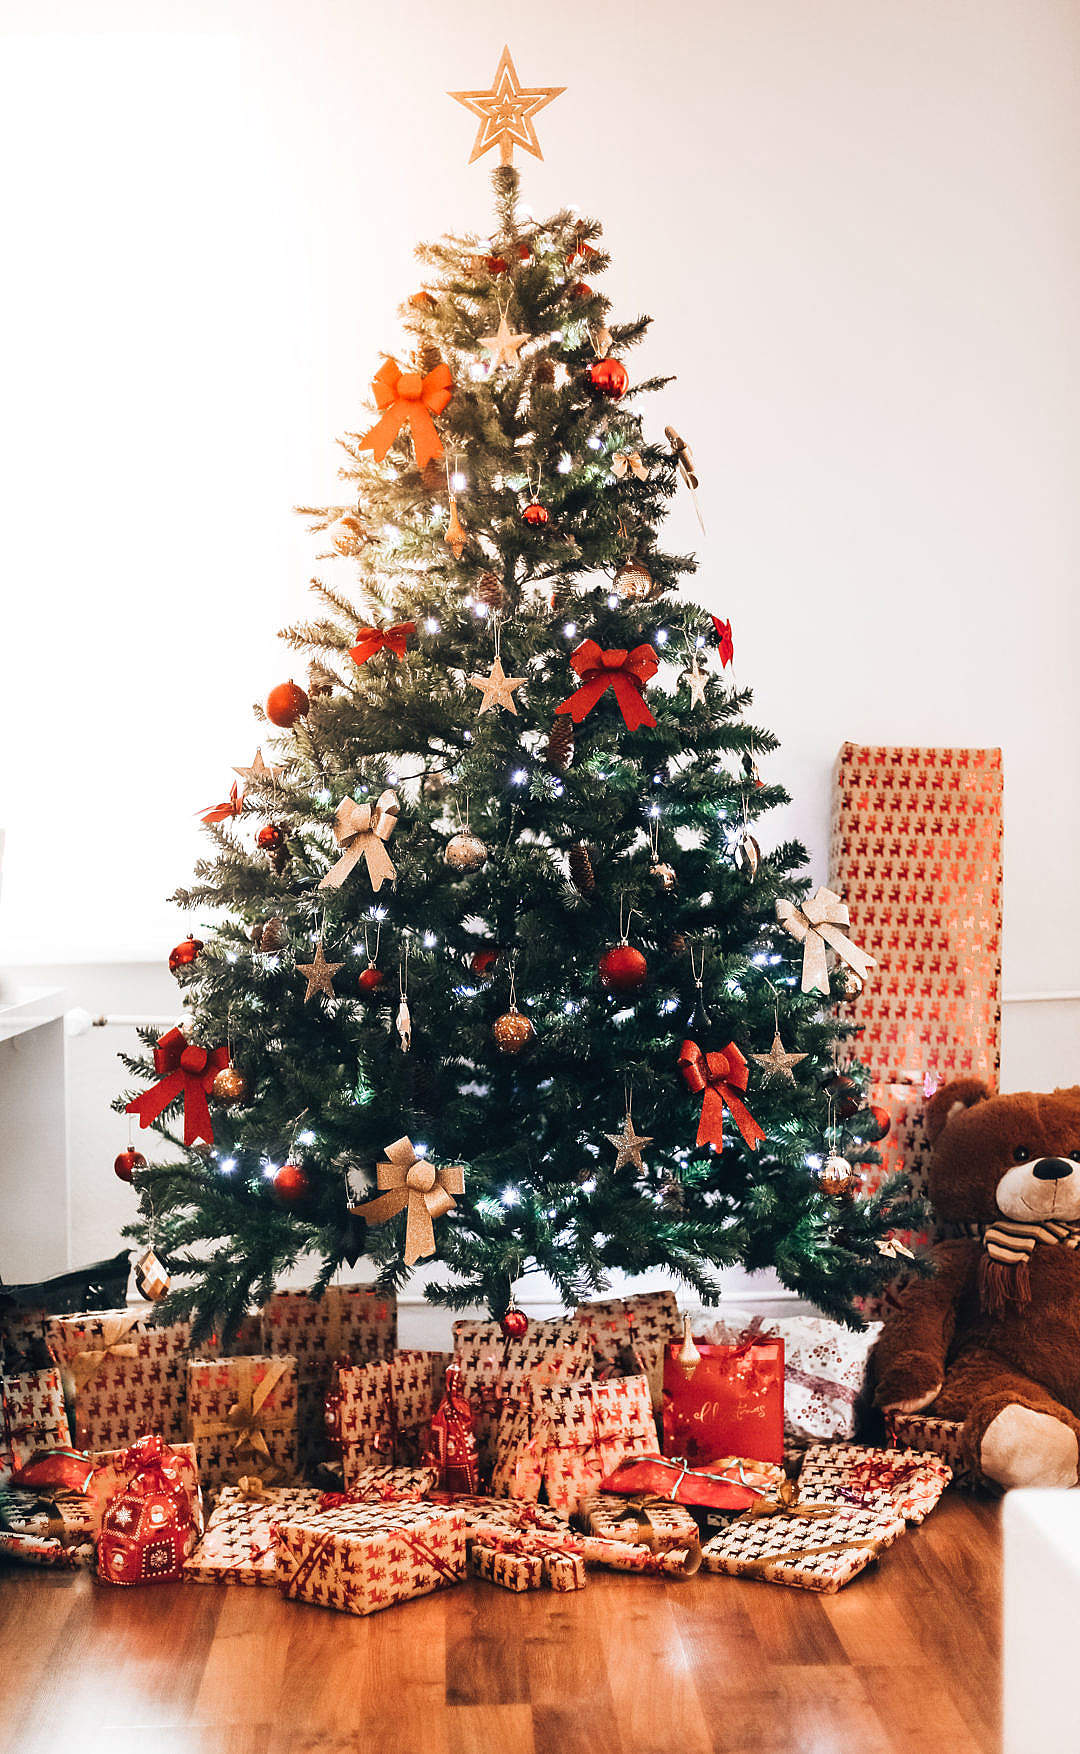 Download Christmas Tree FREE Stock Photo